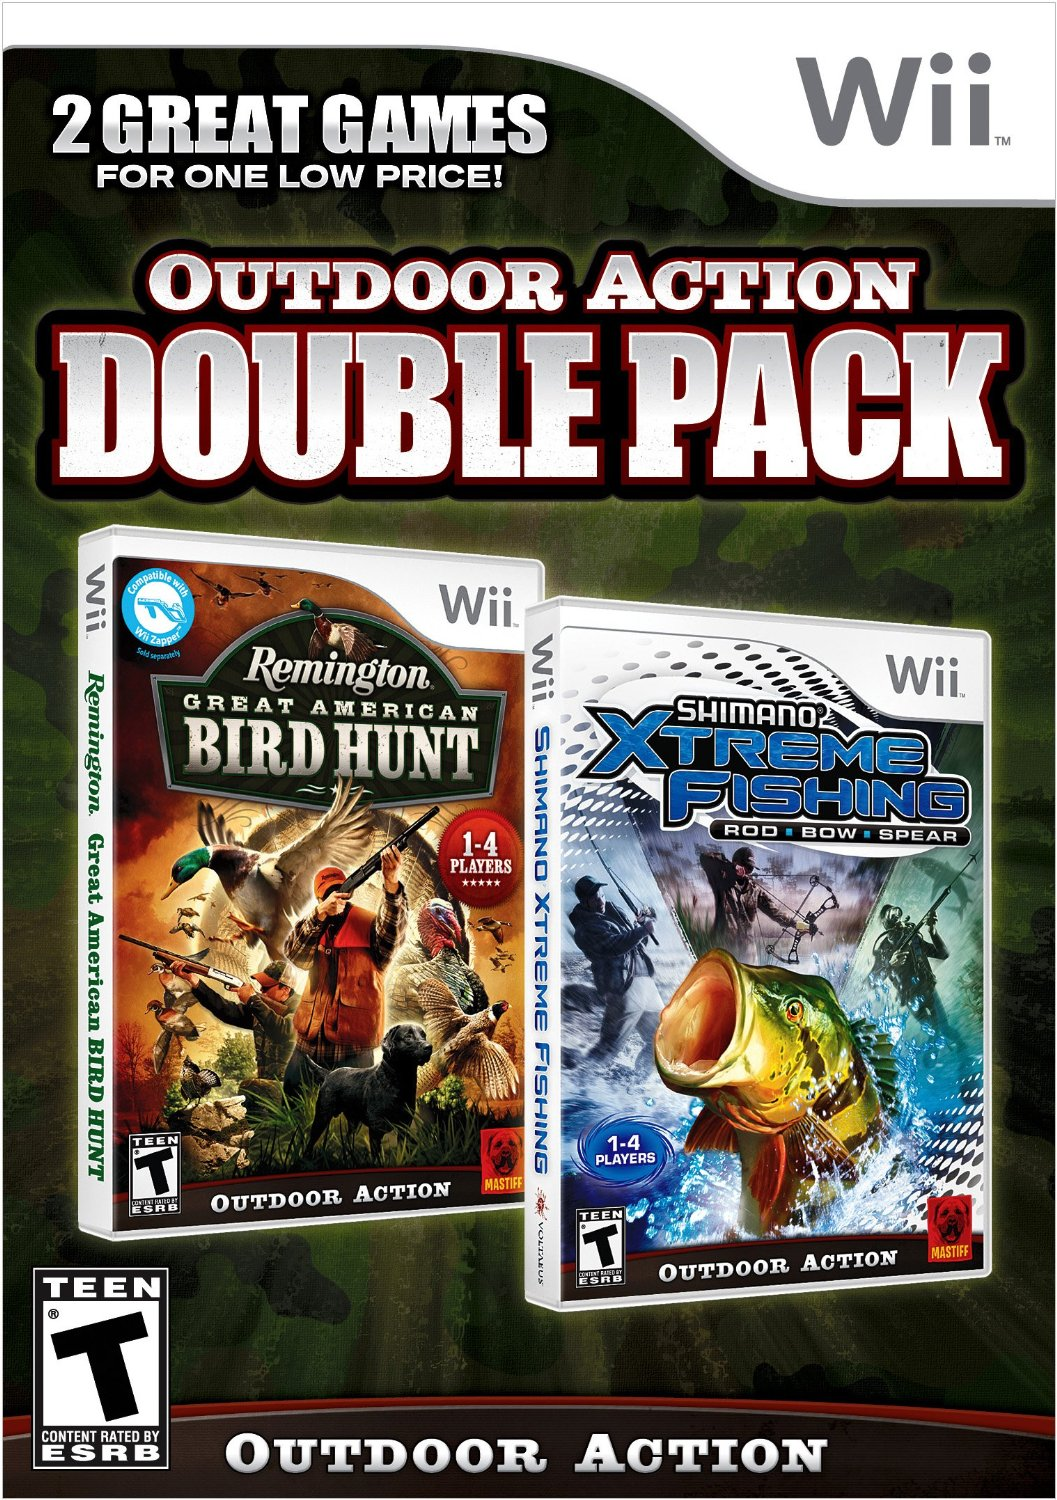 Remington great american bird hunt and shimano xtreme for Xbox one hunting and fishing games